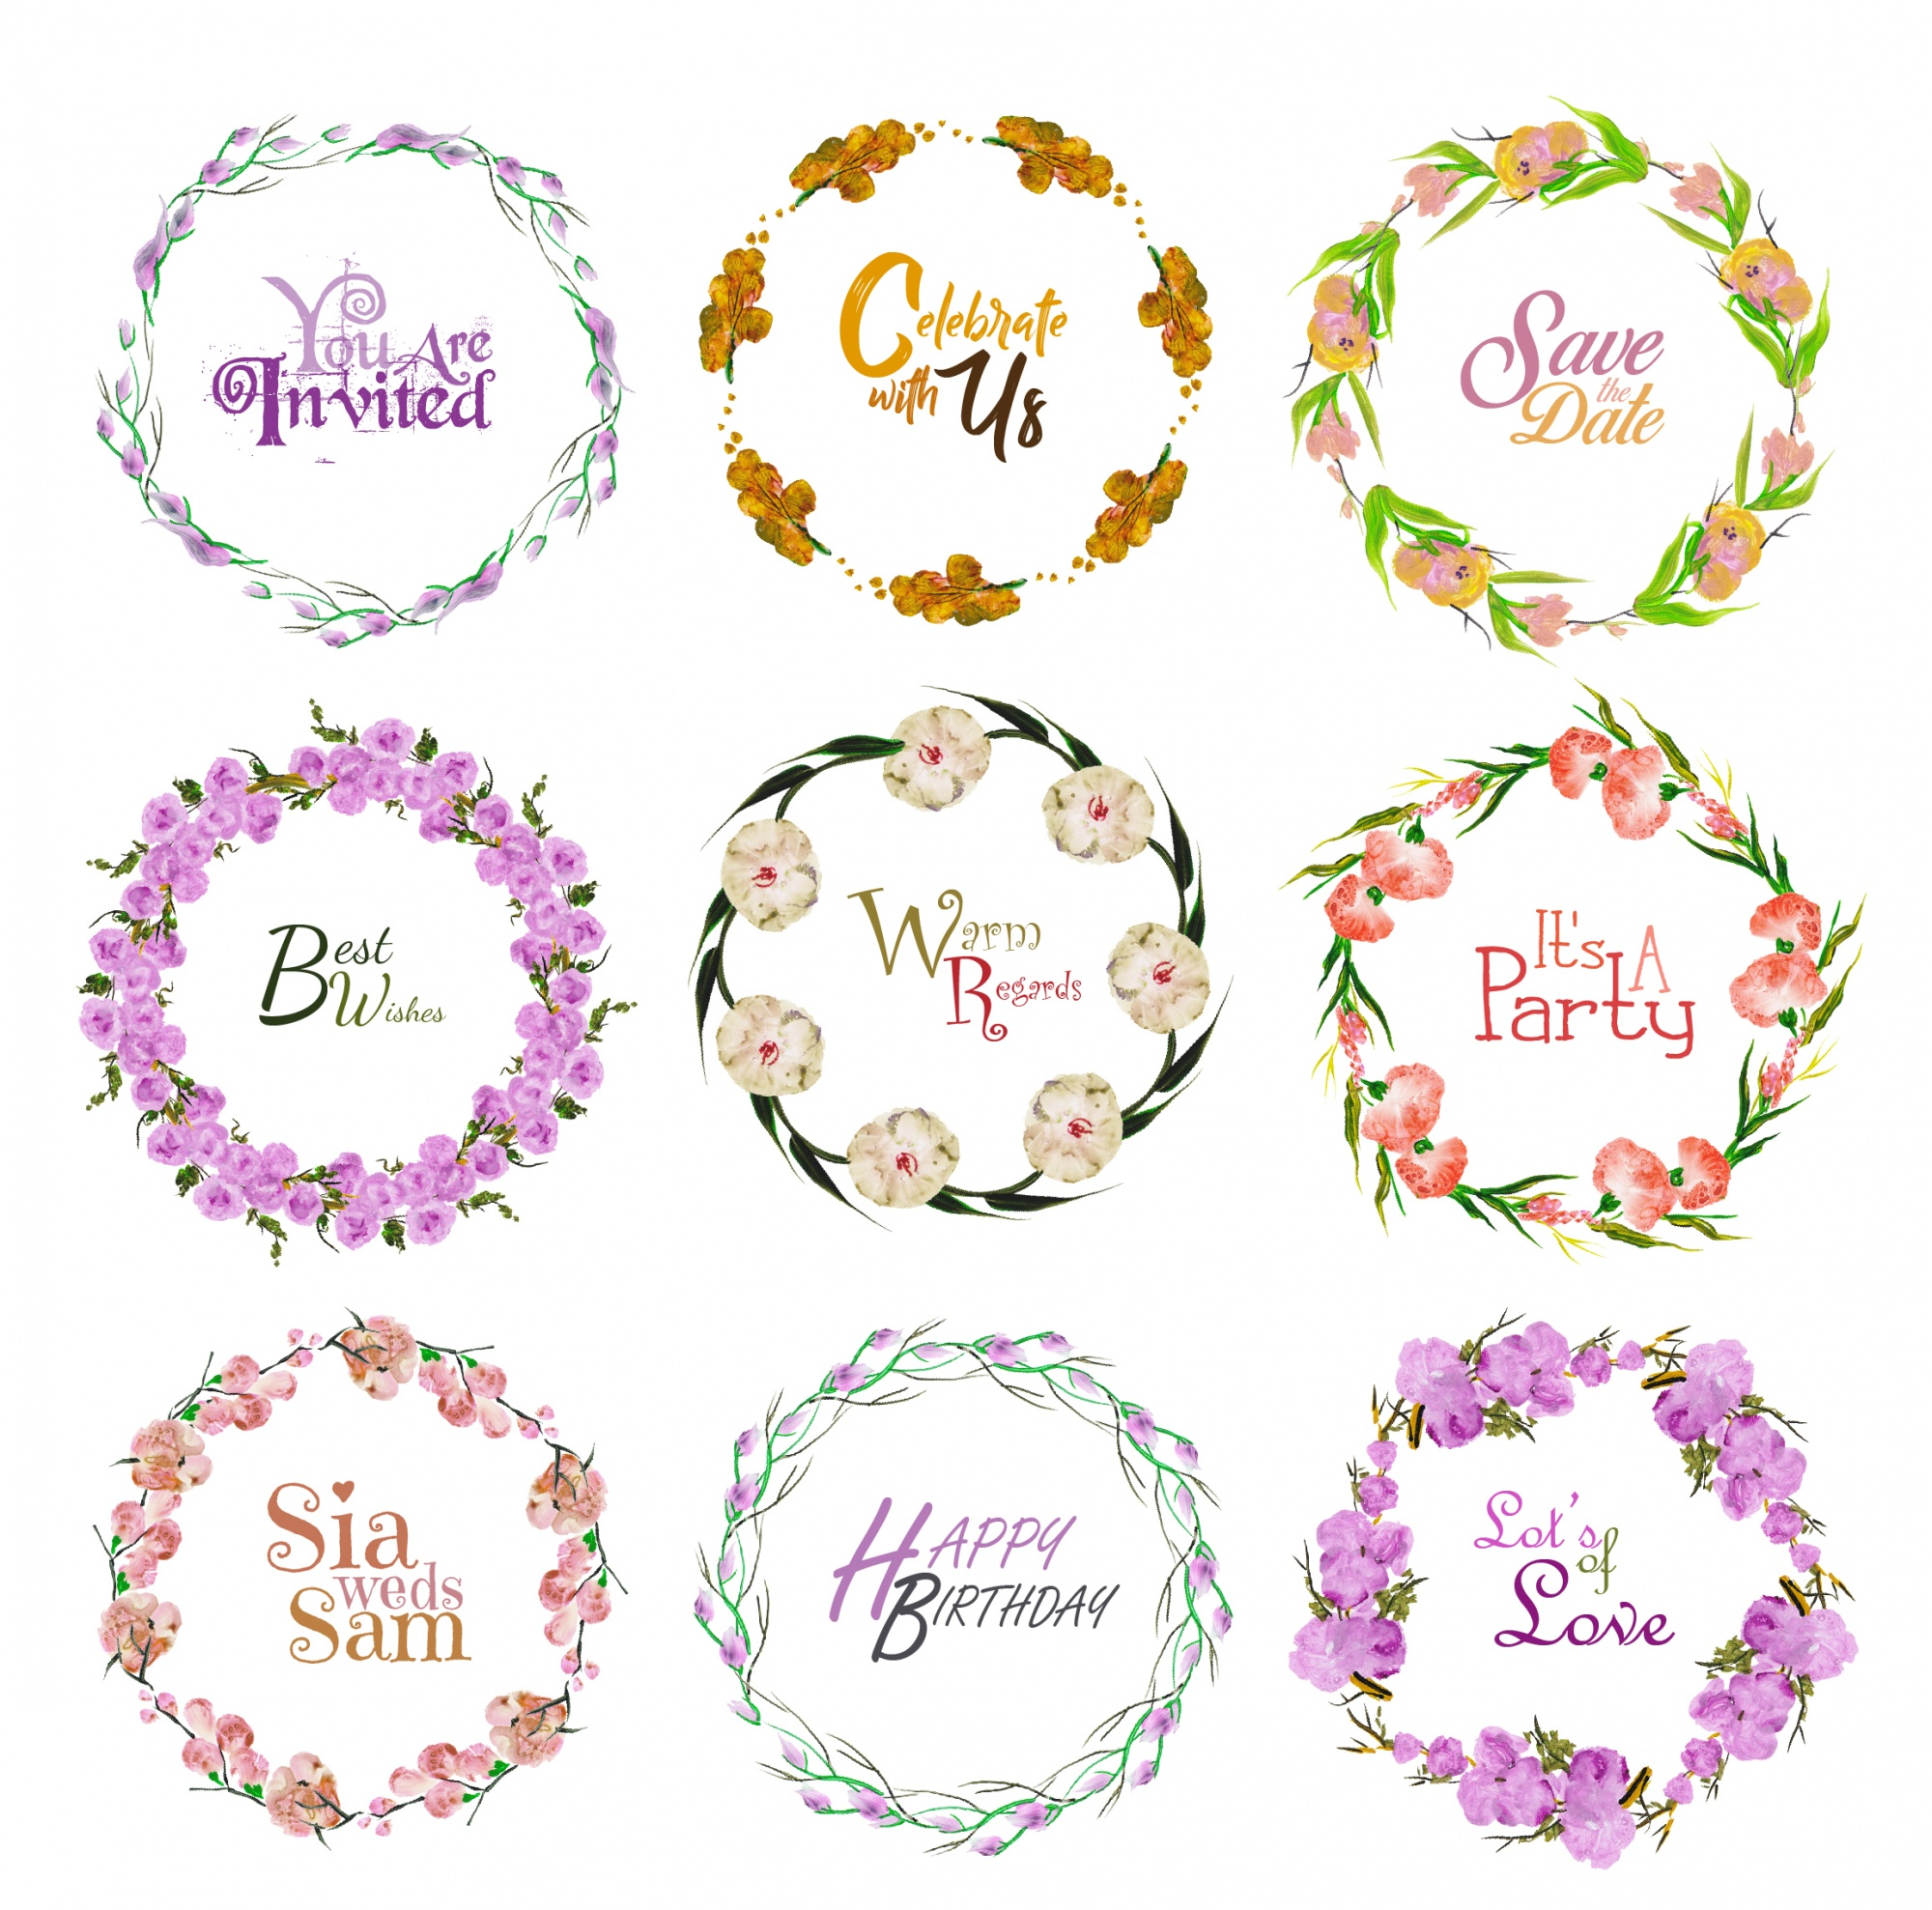 Party floral wreath collection